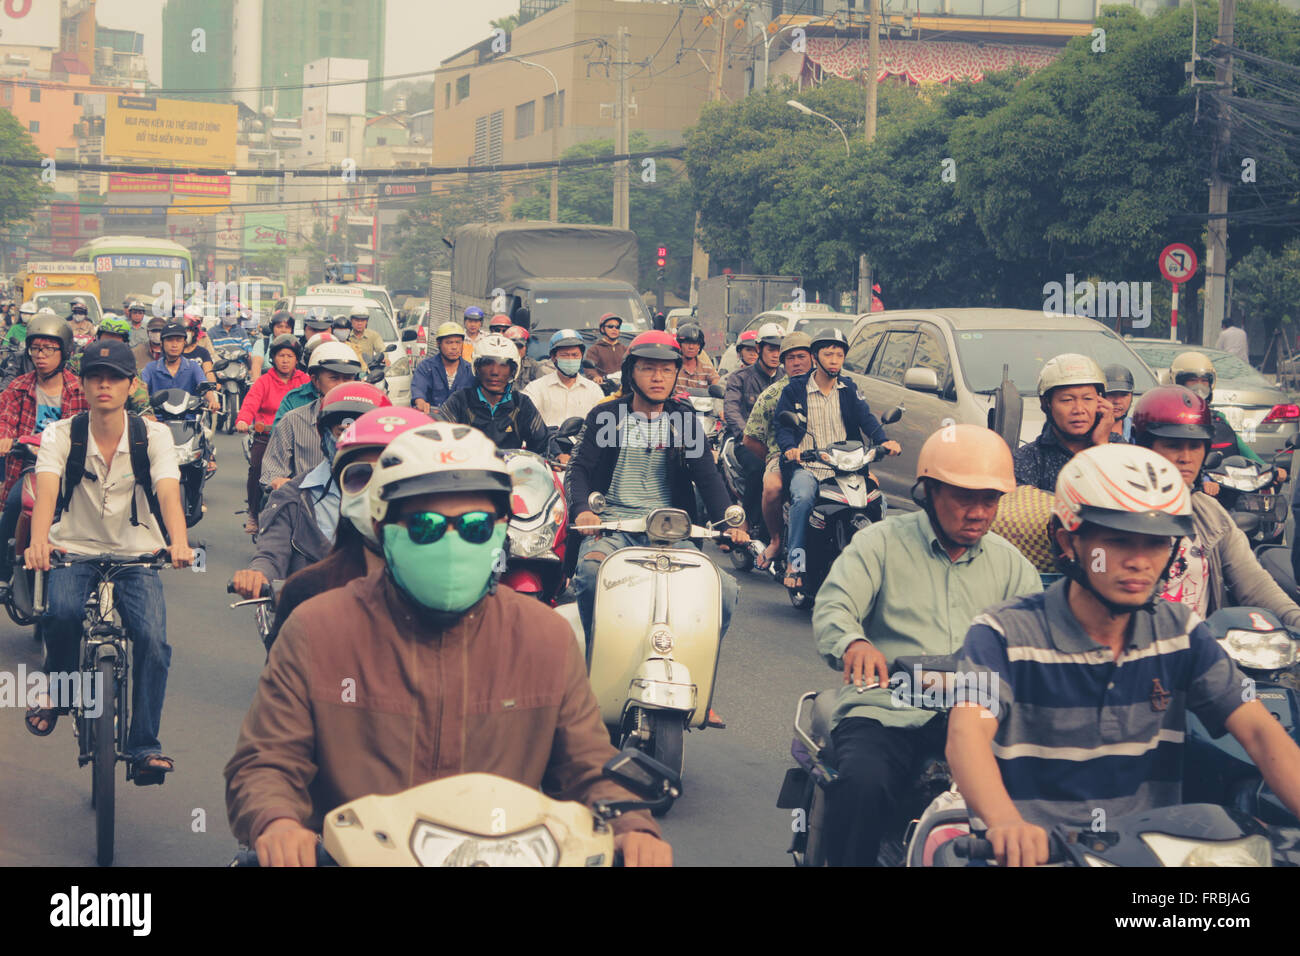 Saigon, Vietnam, January 17. 2014: Road traffic crowded with motorbikes and scooter drivers. - Stock Image